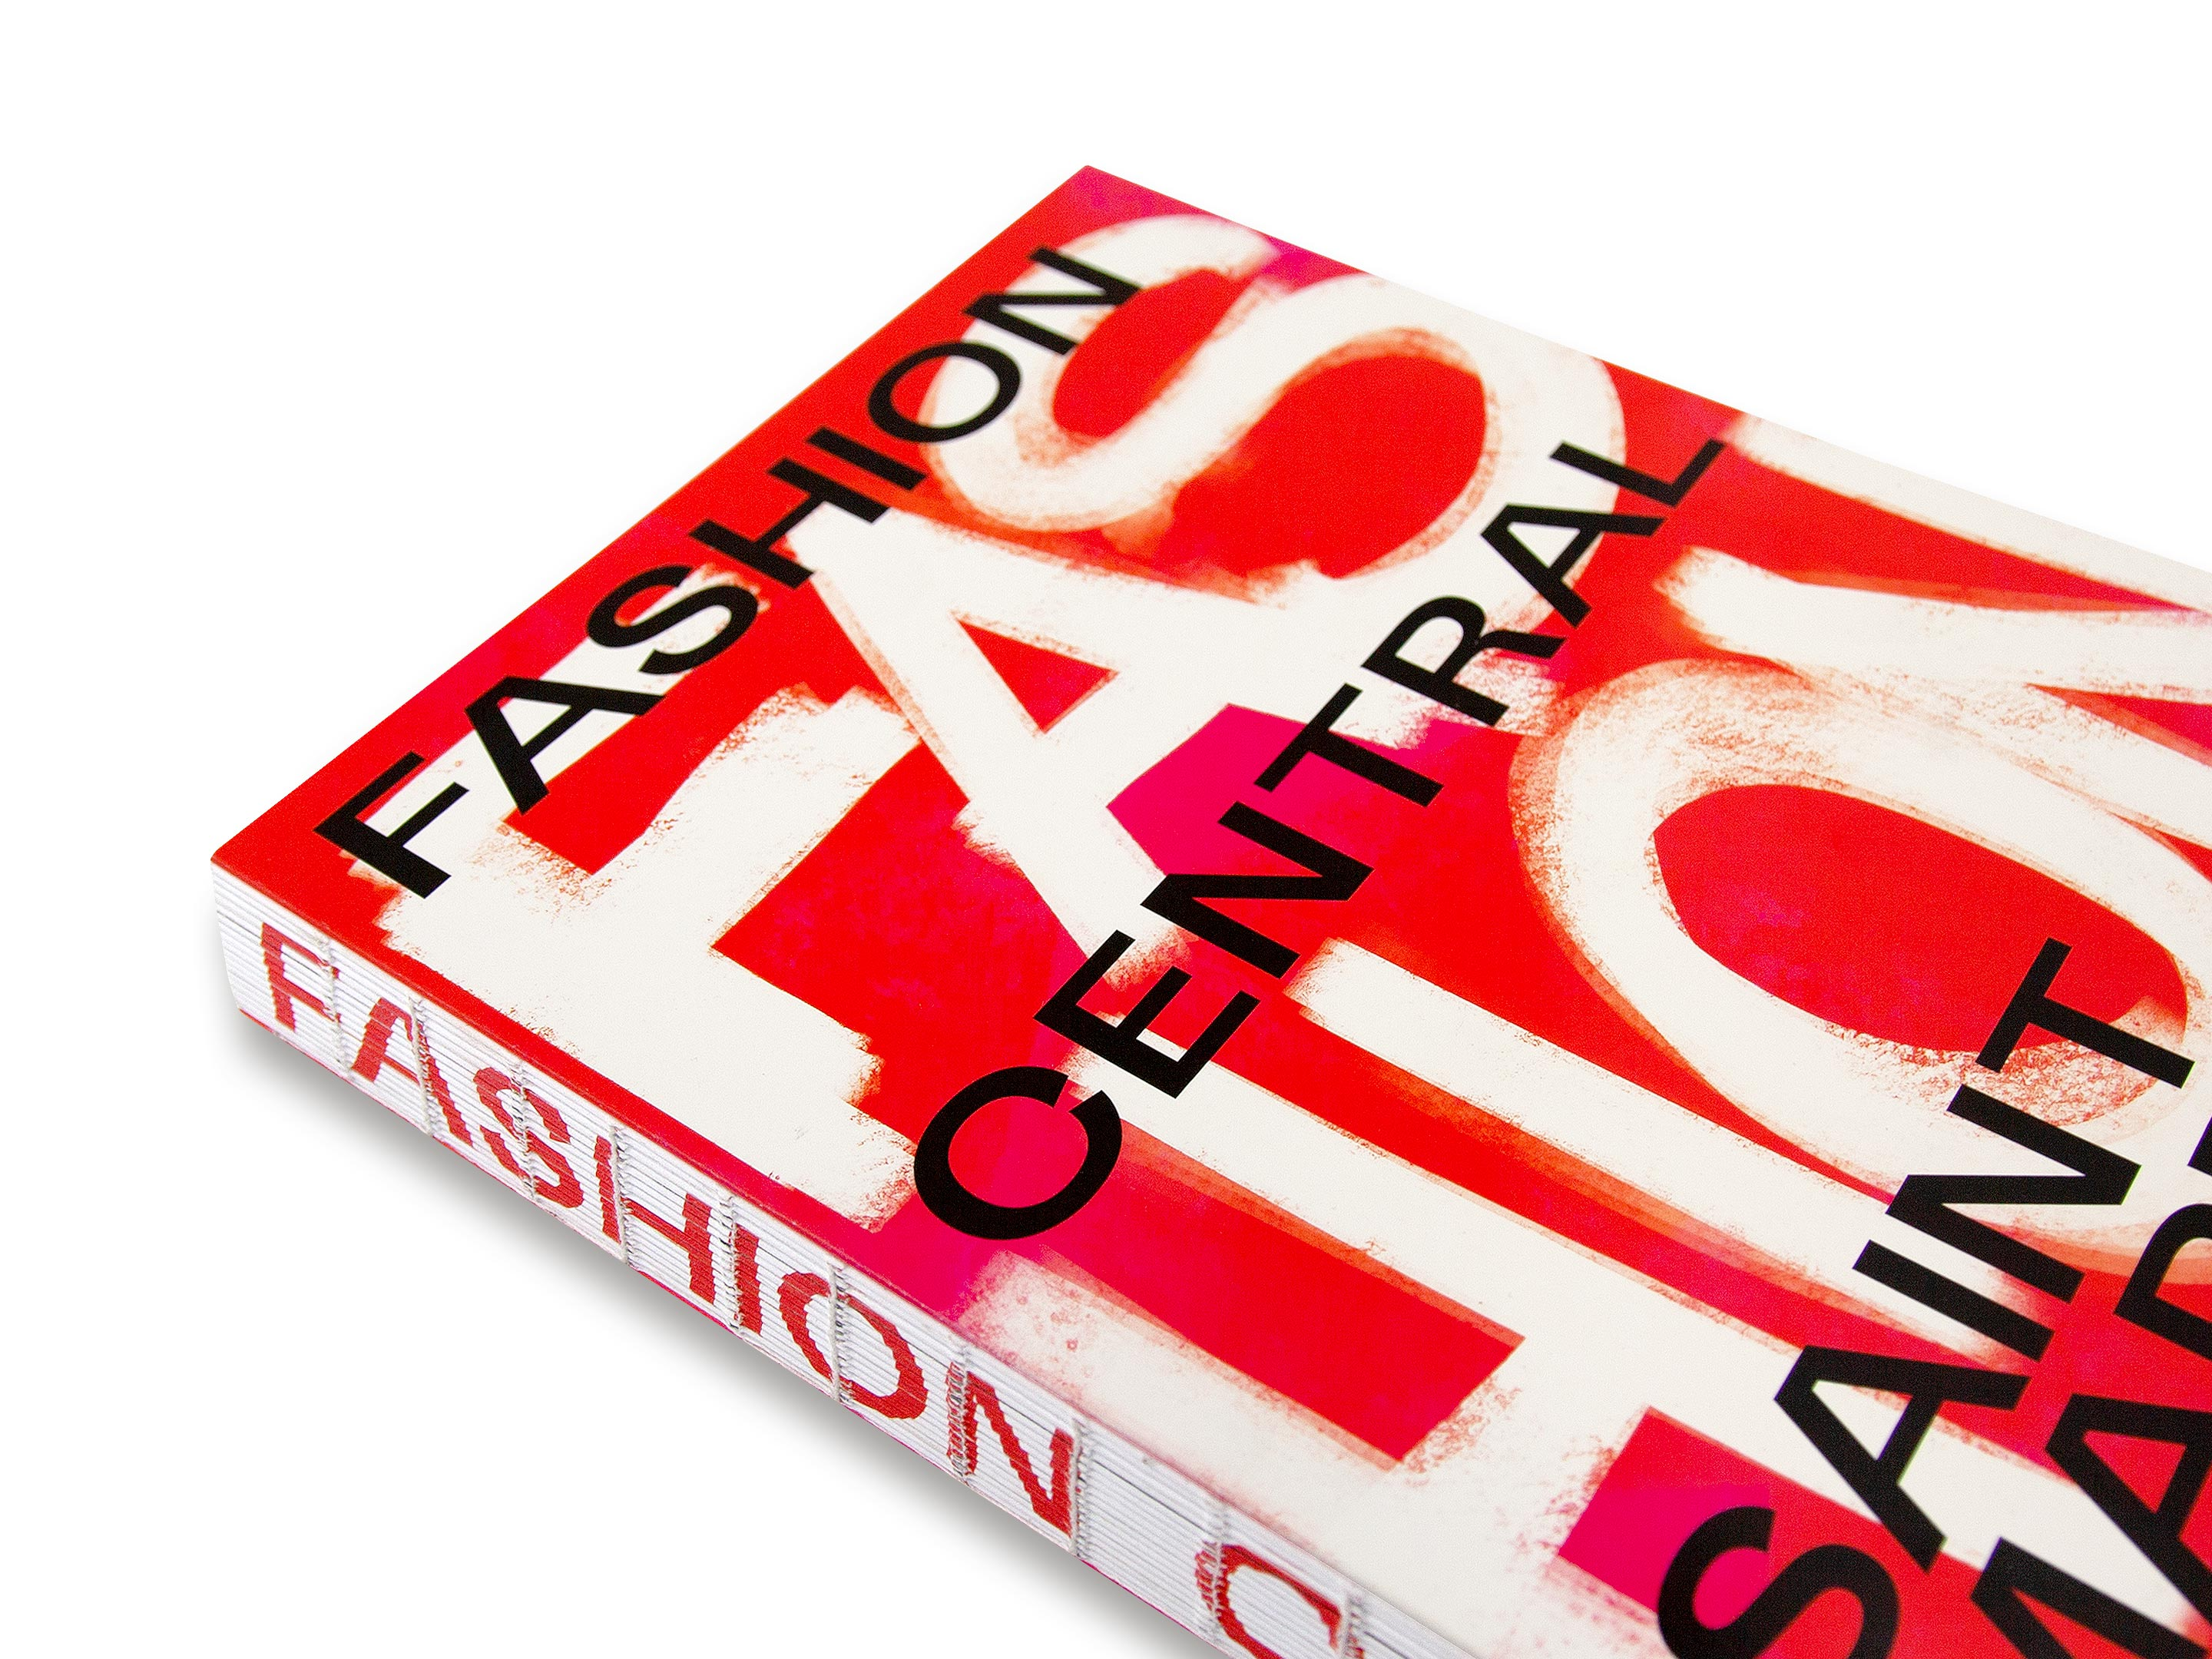 Front cover of Fashion Central Saint Martins book